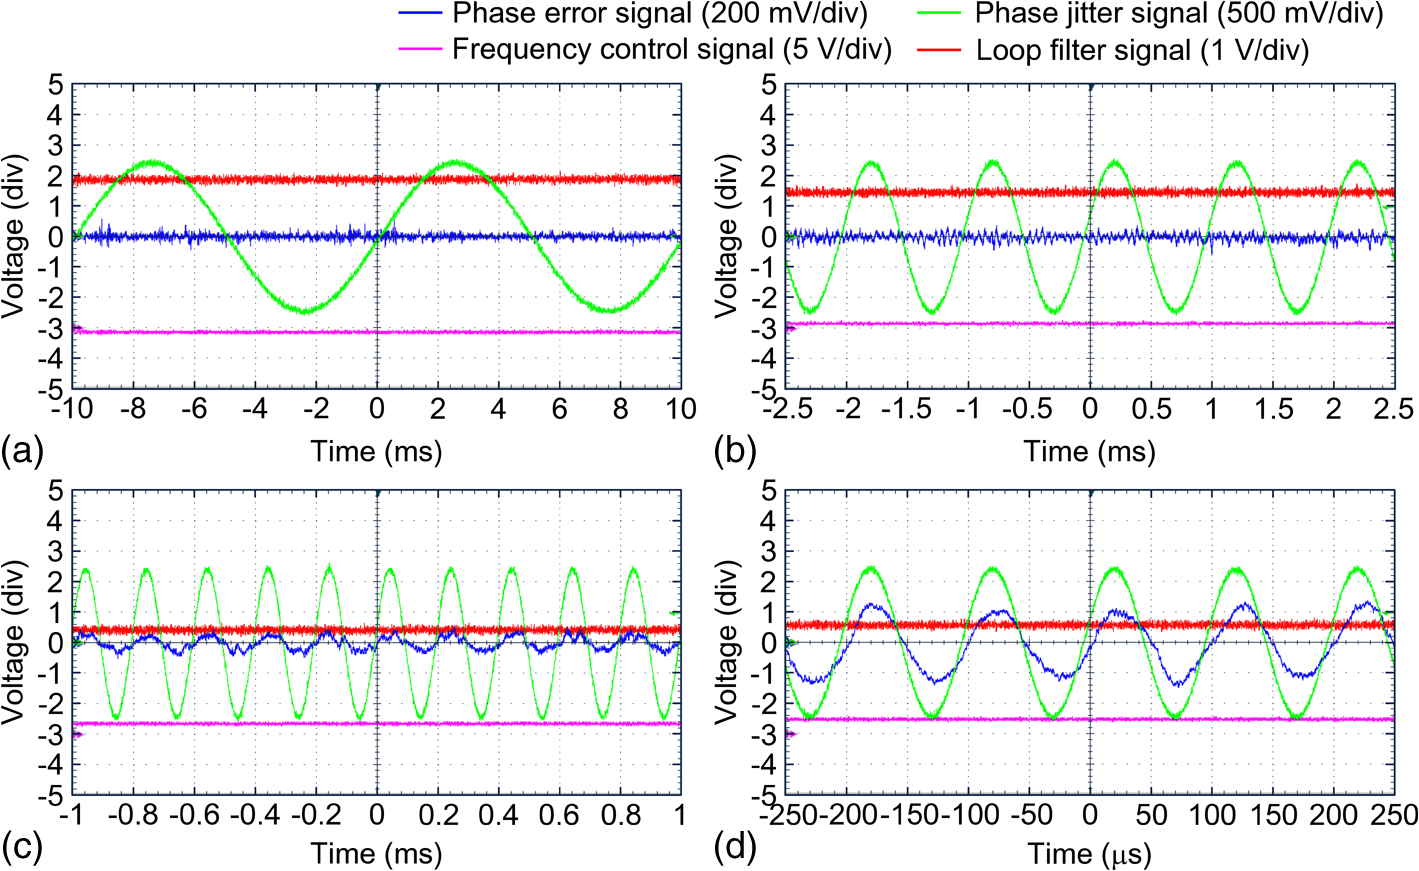 Tracking Performance Of Optical Phase Locking Loop With Frequency Basic Shift Oscillator 1khz Under Sine Jitter The Modulating Is A 100 Hz B 1 Khz C 5 And D 10